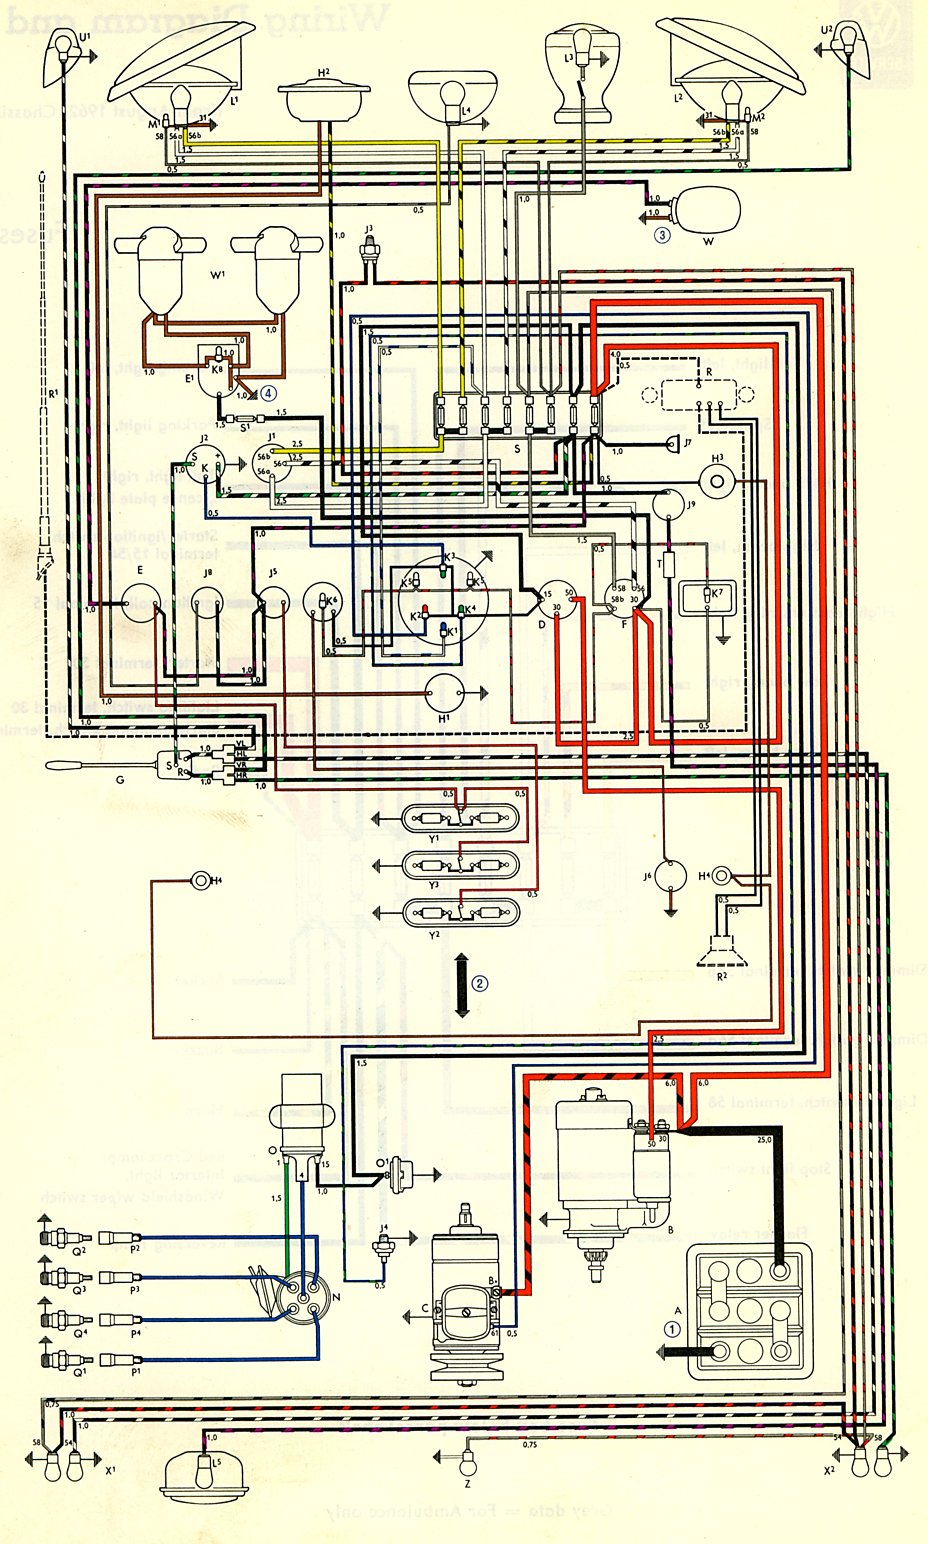 1956 vw wiring diagram 5 awe capecoral bootsvermietung de \u20221963 vw basic wiring data wiring diagram rh 13 vbn reginaundcaroline de 1956 vw bug wiring diagram 1965 vw wiring diagram